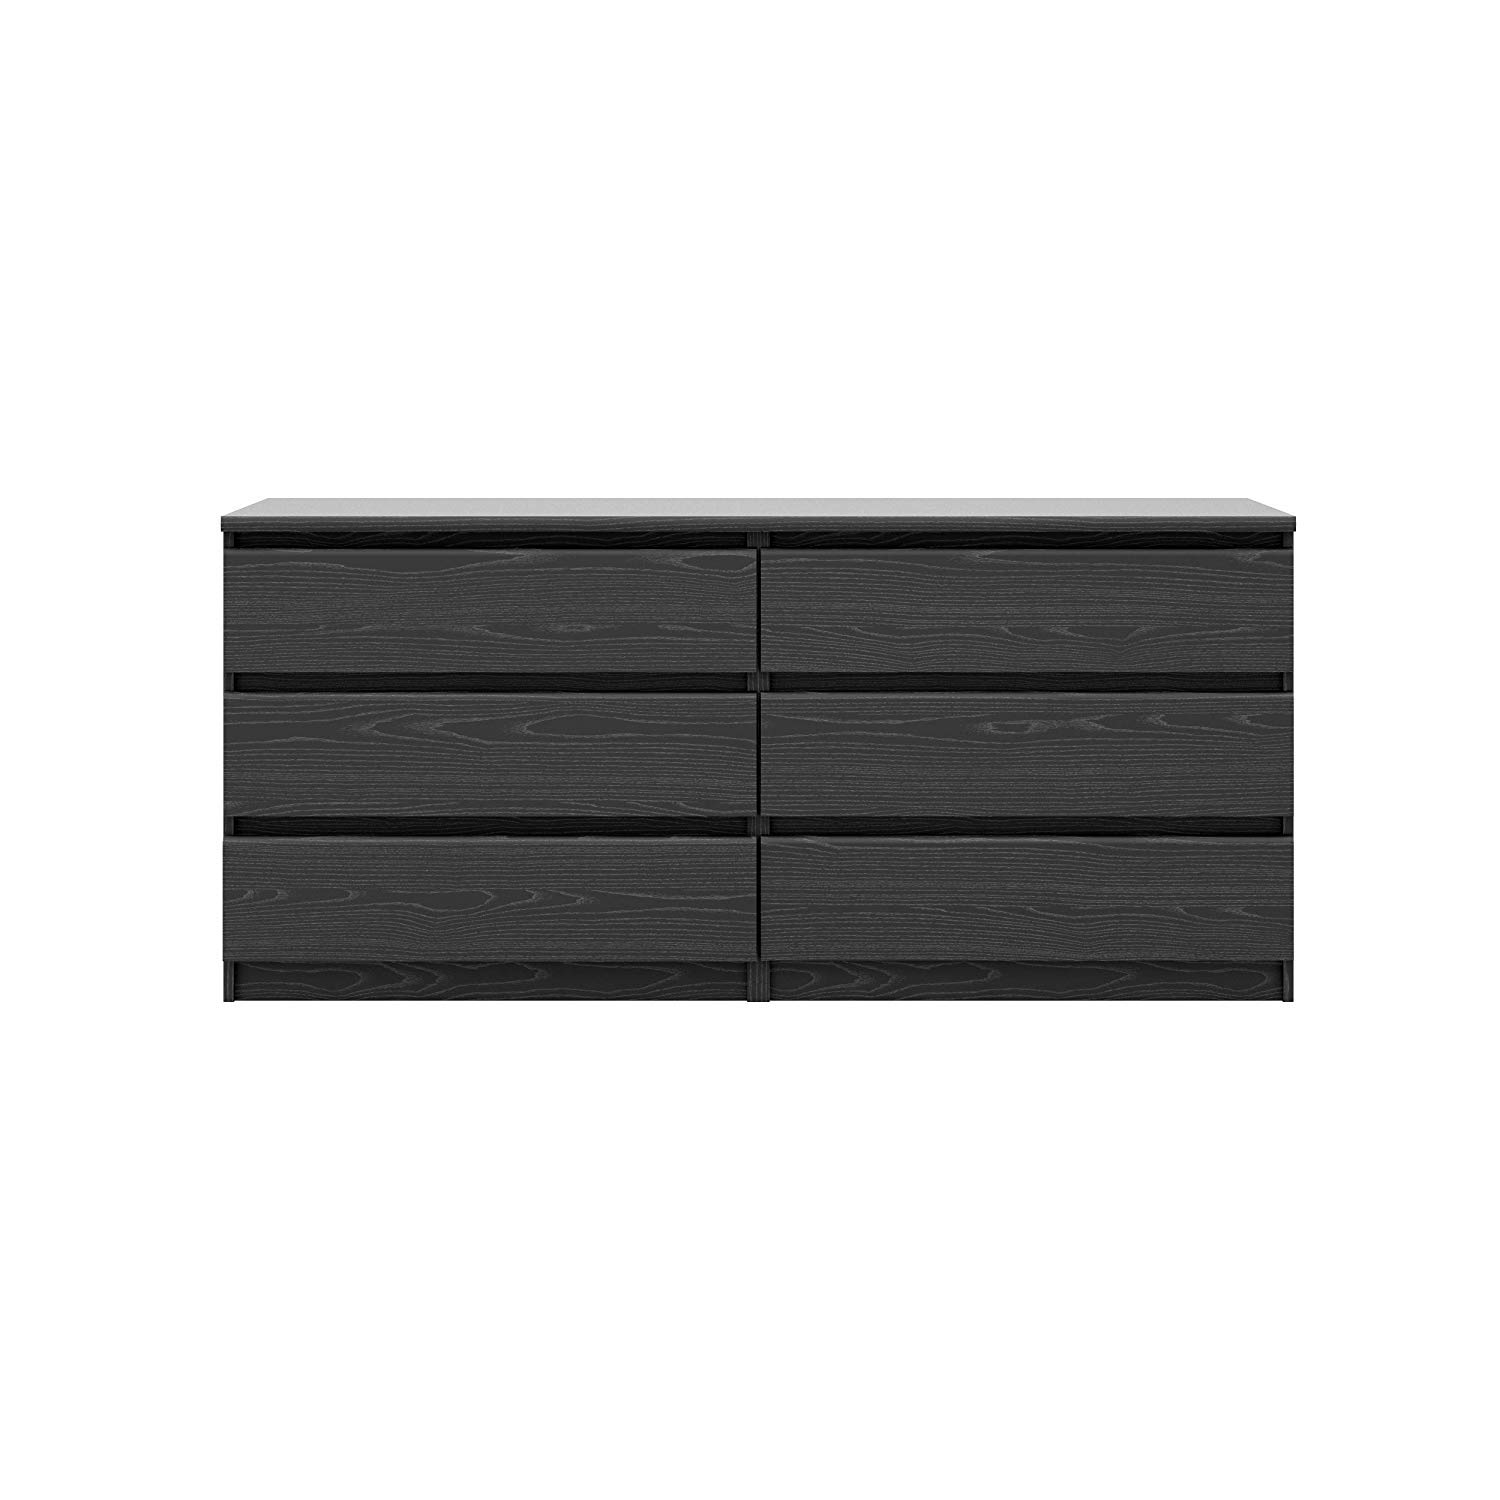 Home Square 2 Piece Dresser and Night Stand with Drawers in Black Woodgrain by Home Square (Image #1)